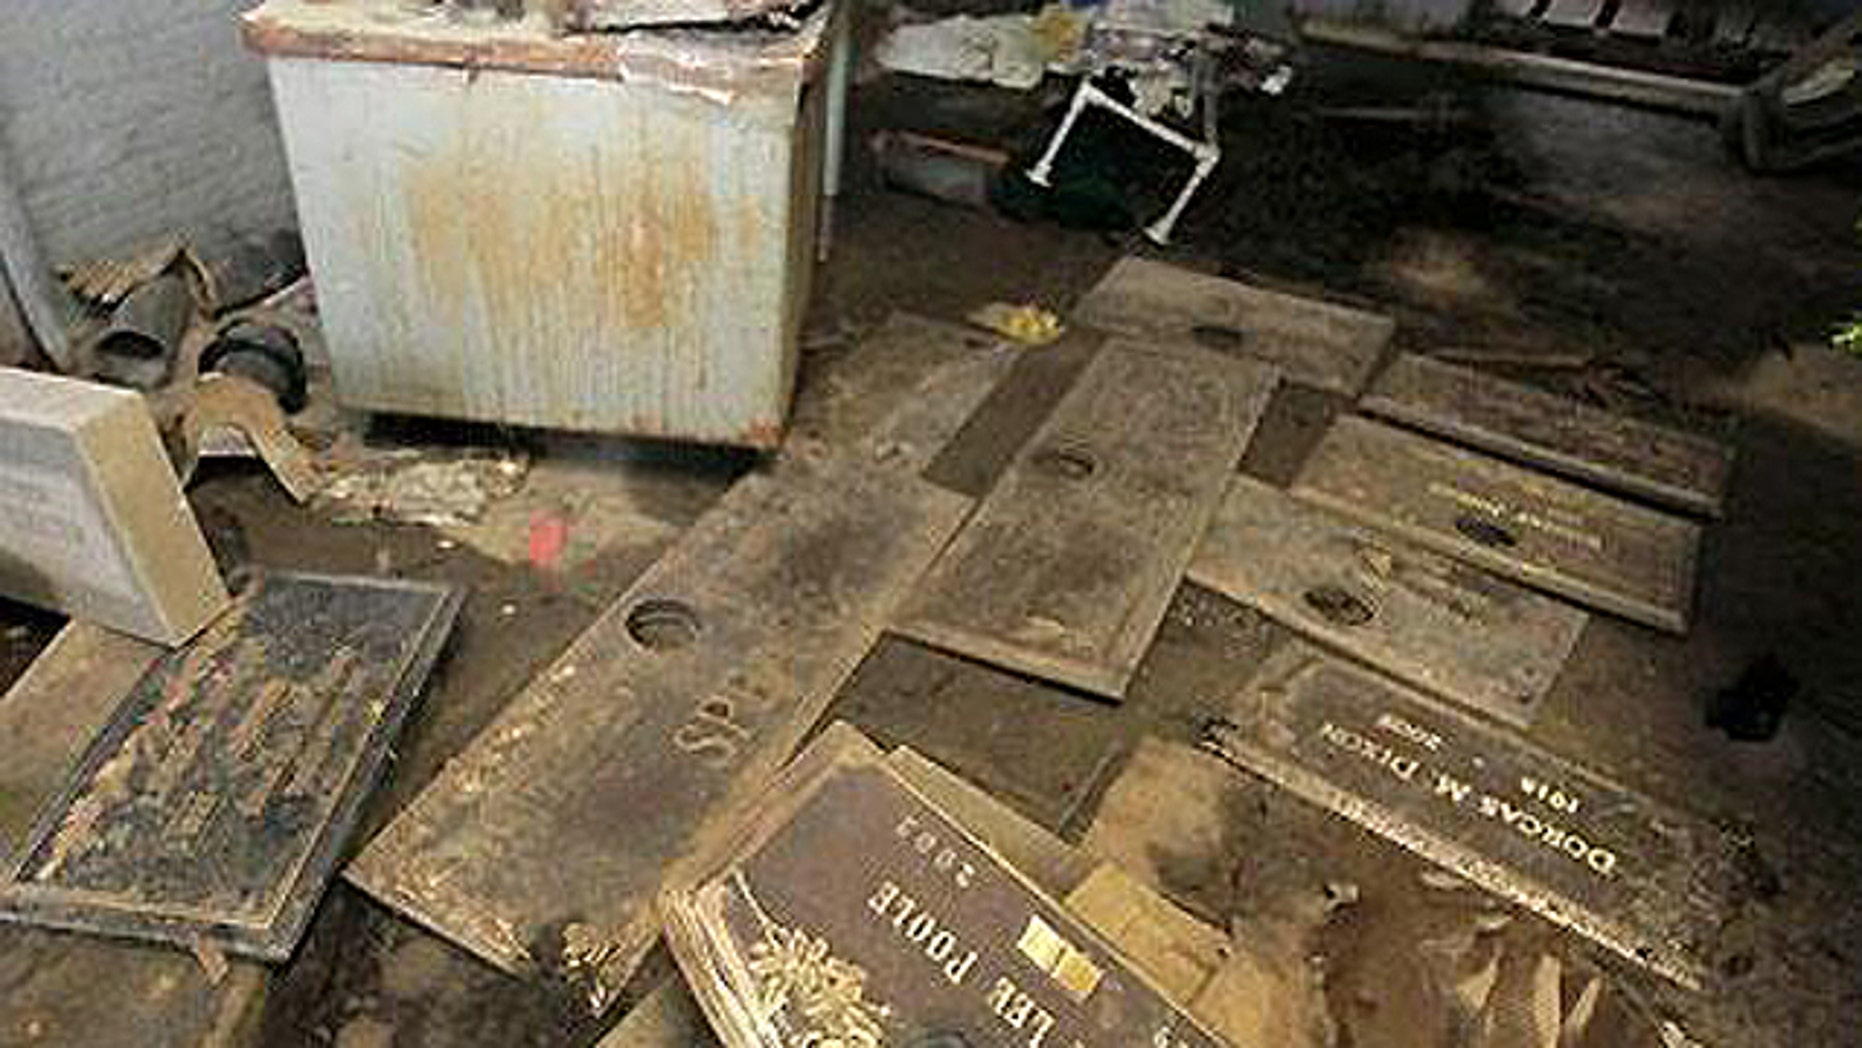 July 10, 2009: Grave markers are seen scattered on the floor of a shack at the Burr Oak Cemetery in Alsip, Ill., where four workers allegedly dug up at least 300 graves and dumped the bodies into unmarked mass graves to resell the plots for a profit. A $7.6 million settlement was later reached, but death care adovcates say problems plaguing the industry aren't limited to 150-acre cemetery.